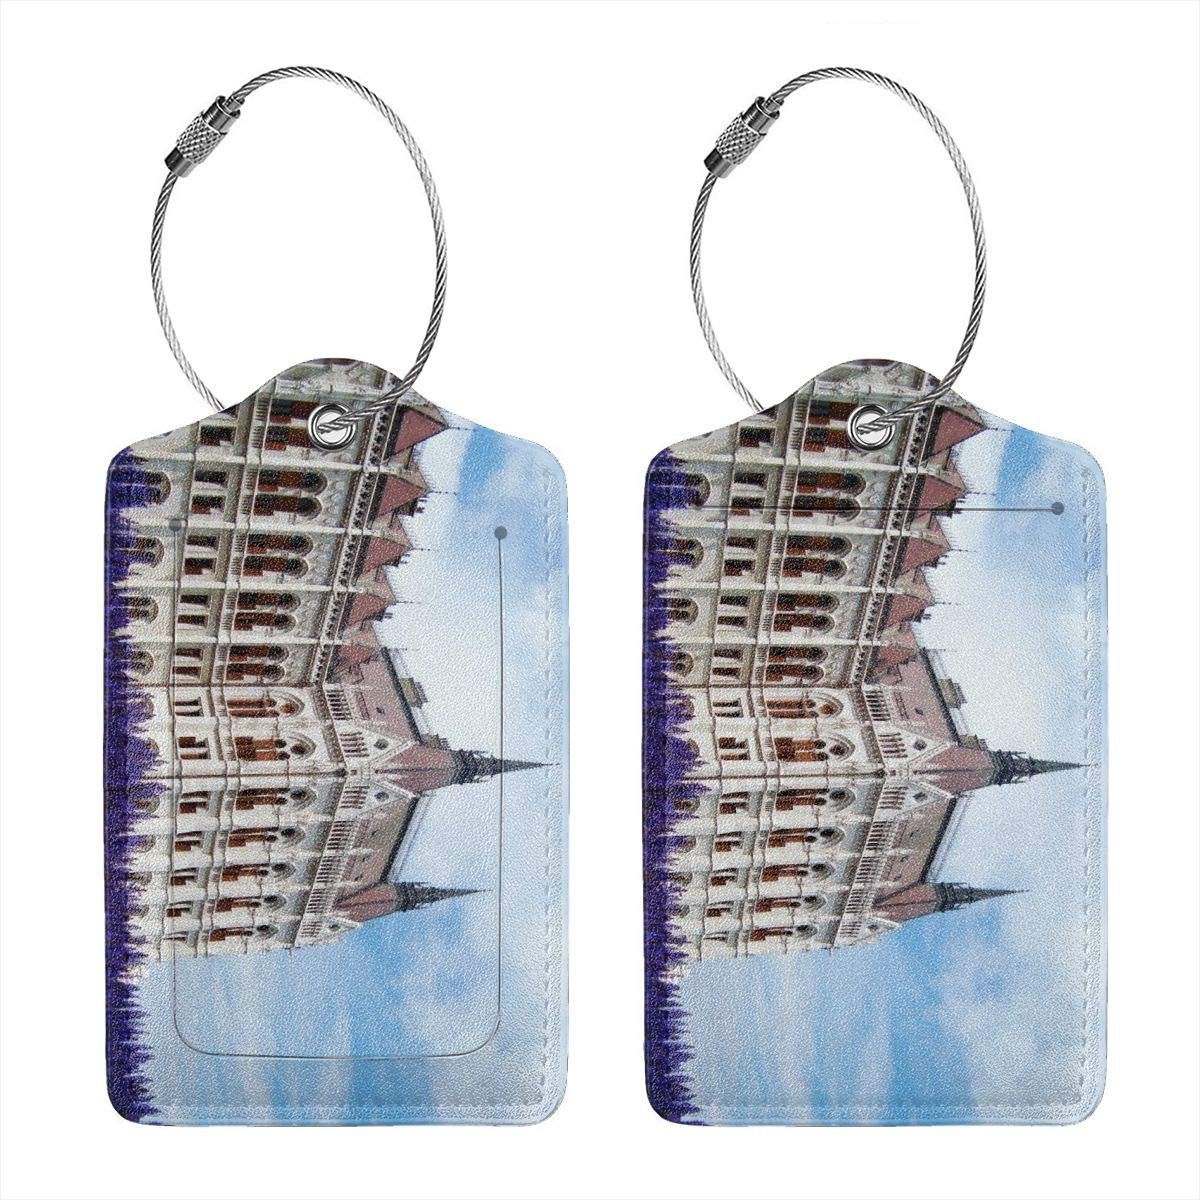 Hungarian Parliament Building Gothic Architecture Travel Luggage Tags With Full Privacy Cover Leather Case And Stainless Steel Loop